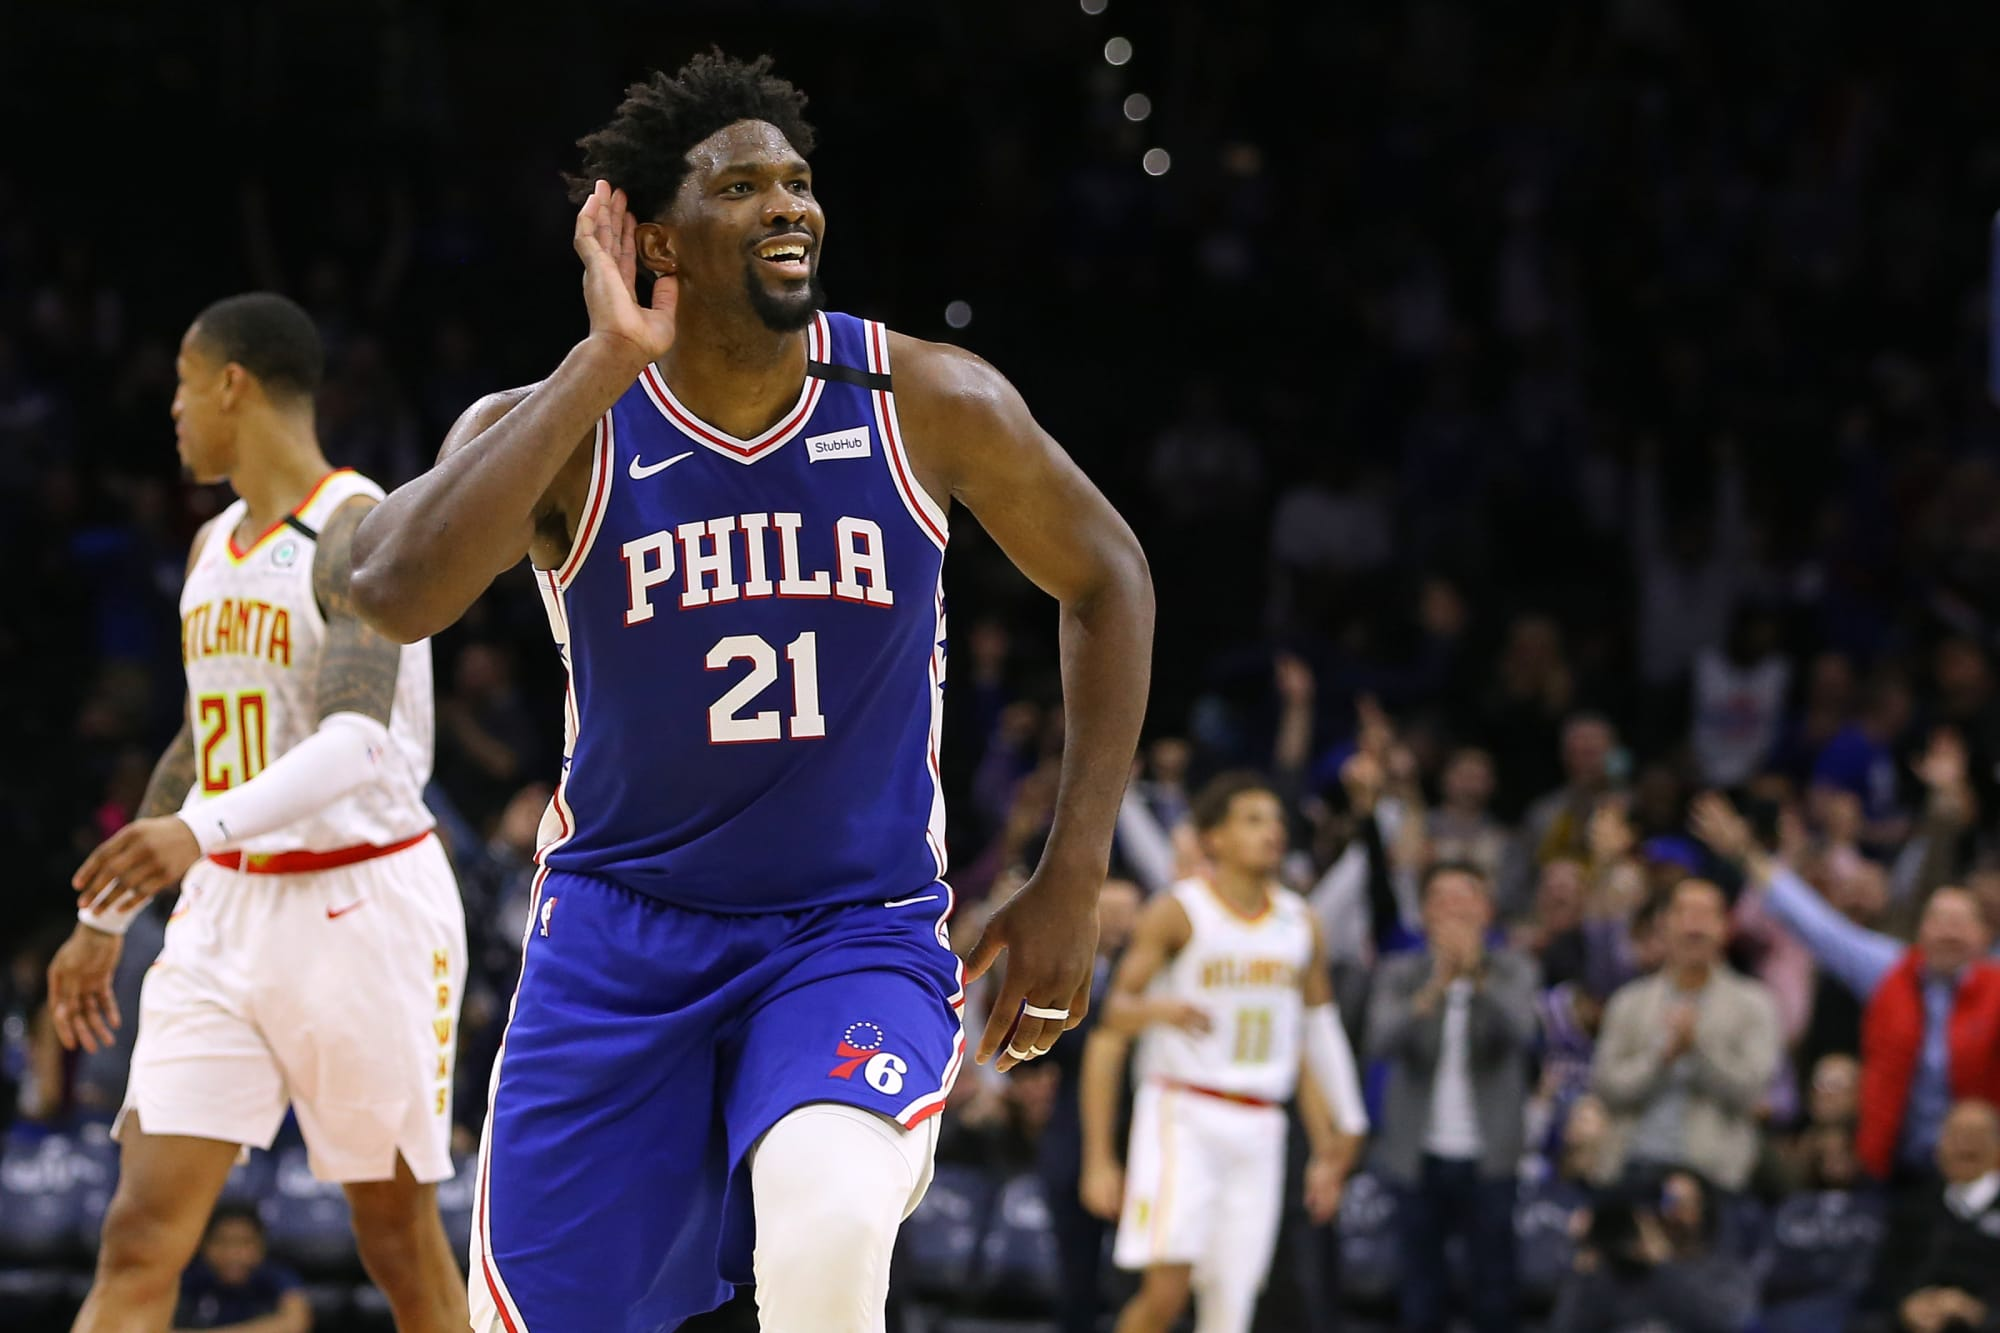 The Sixers will go as far in the playoffs as Joel Embiid carries them